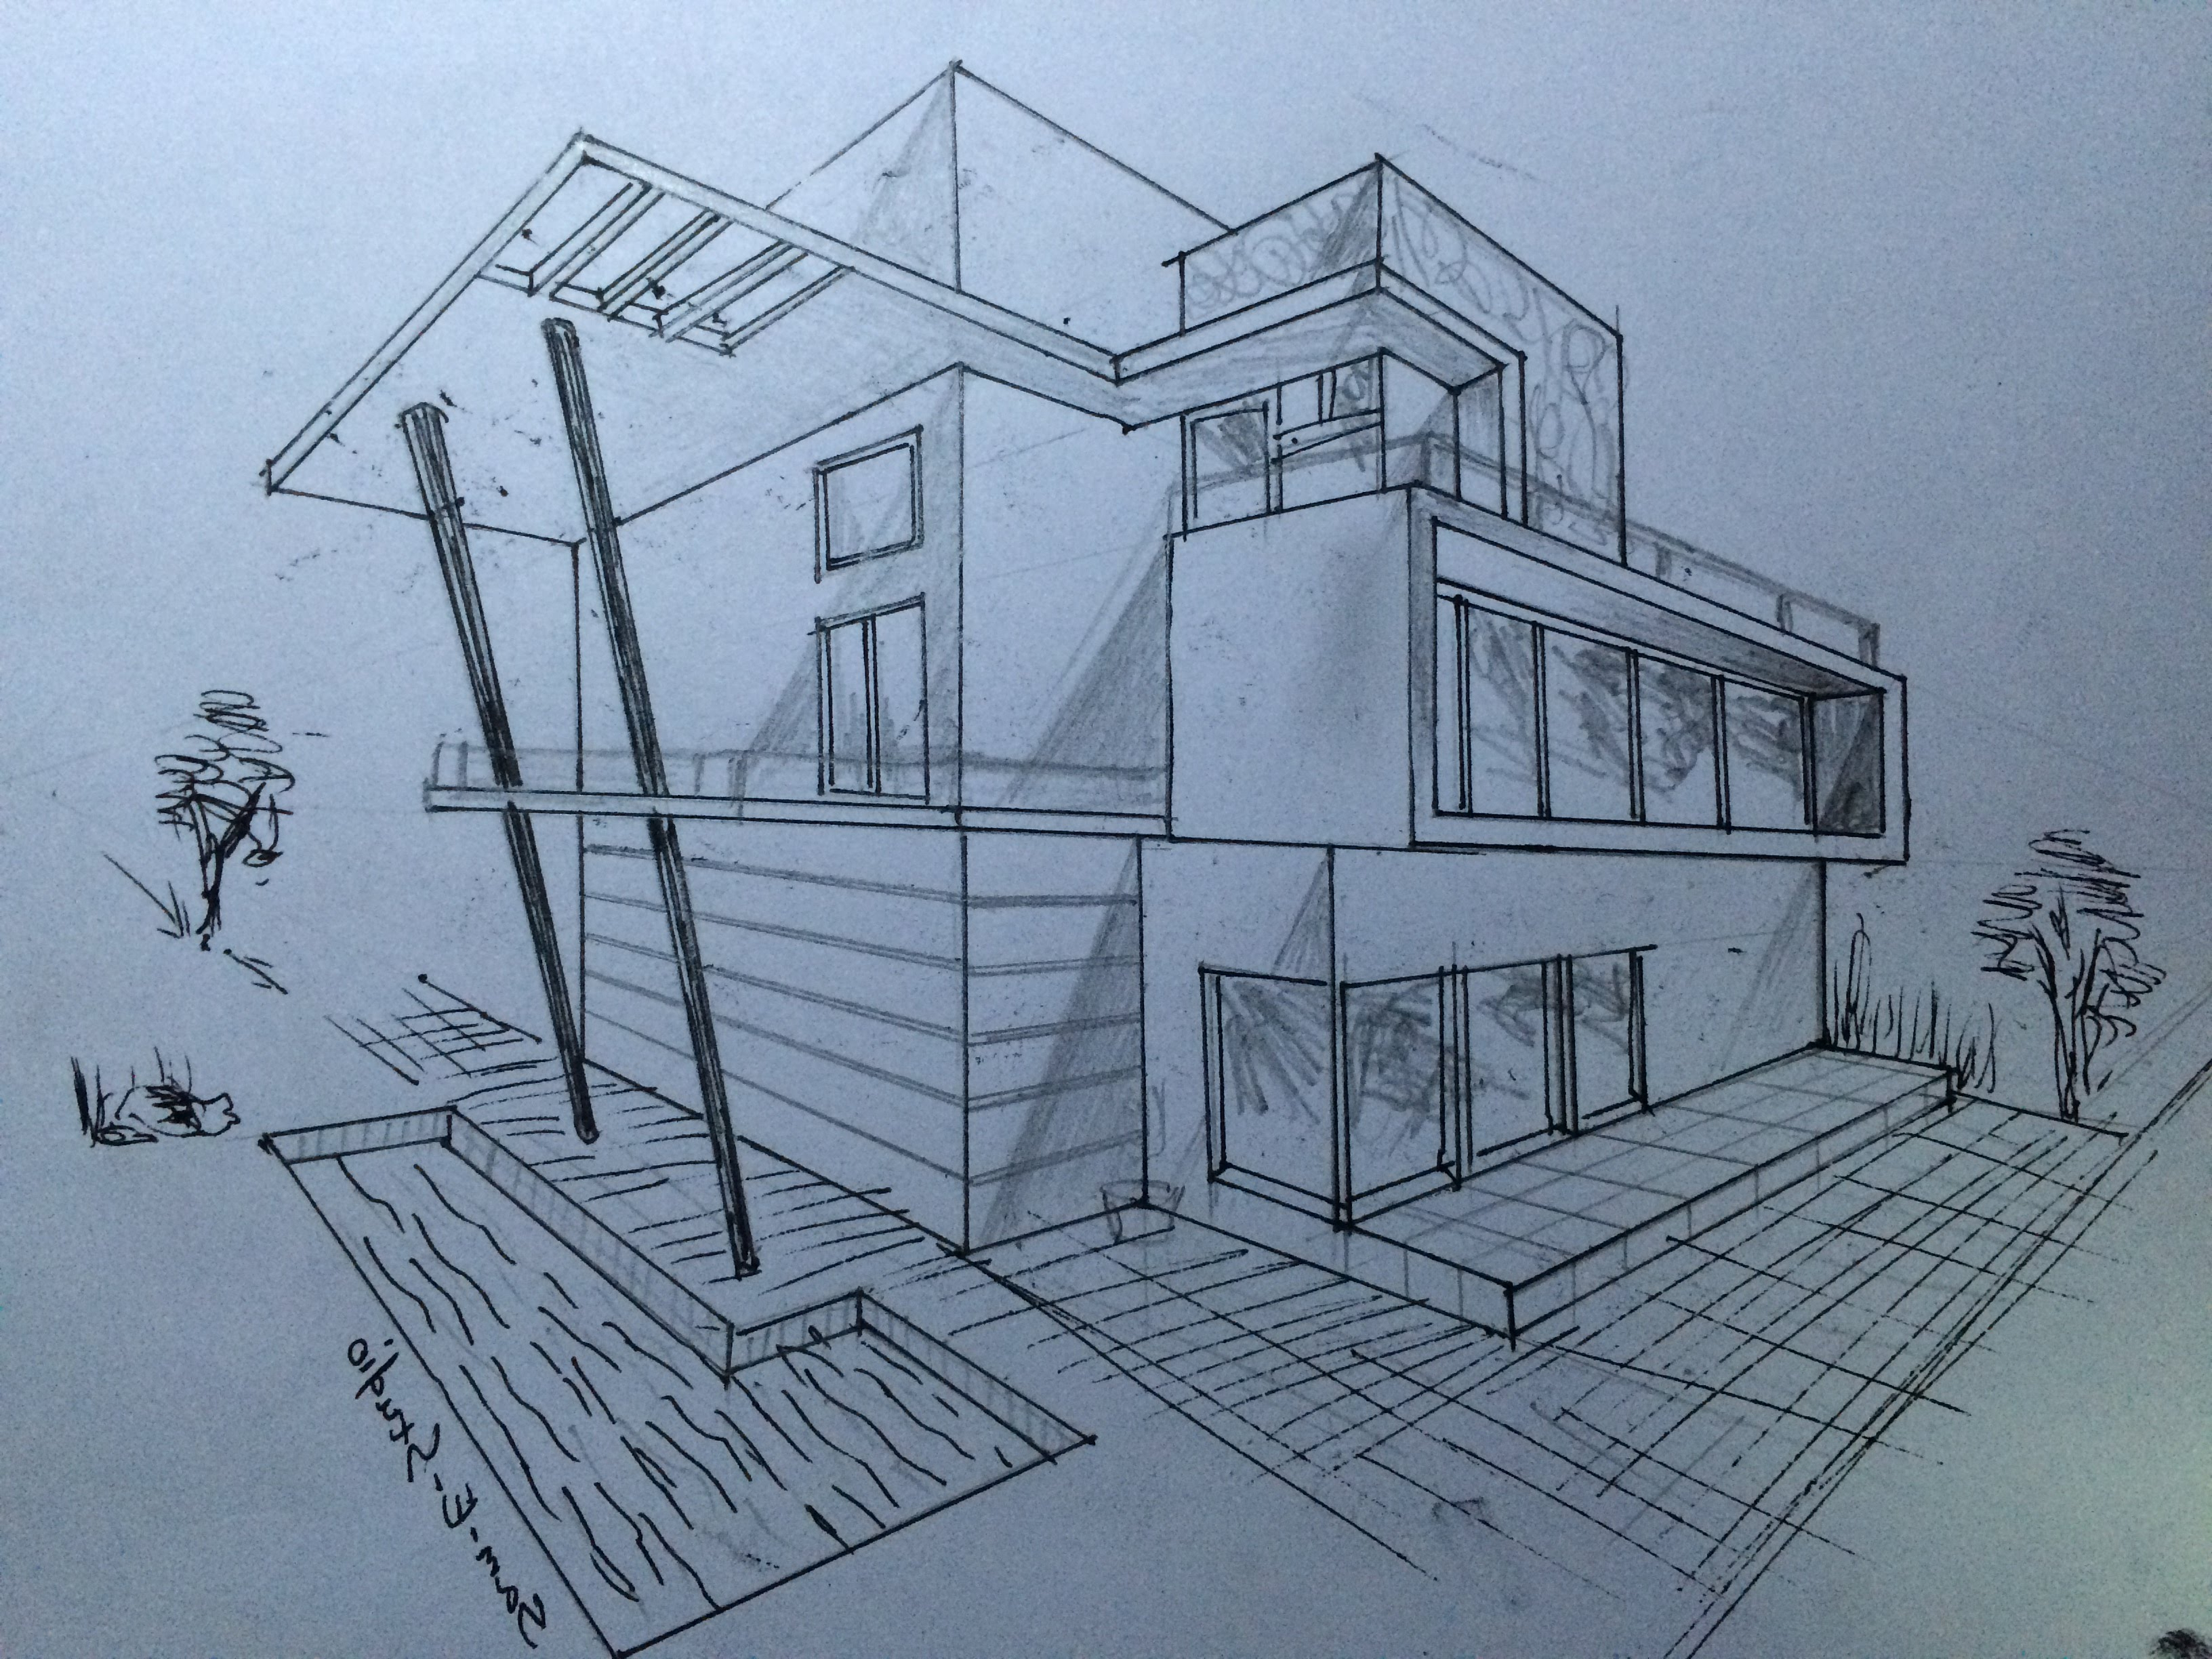 Amazing 3264x2448 3D Perspective House Drawing Pencil Architecture Modern House